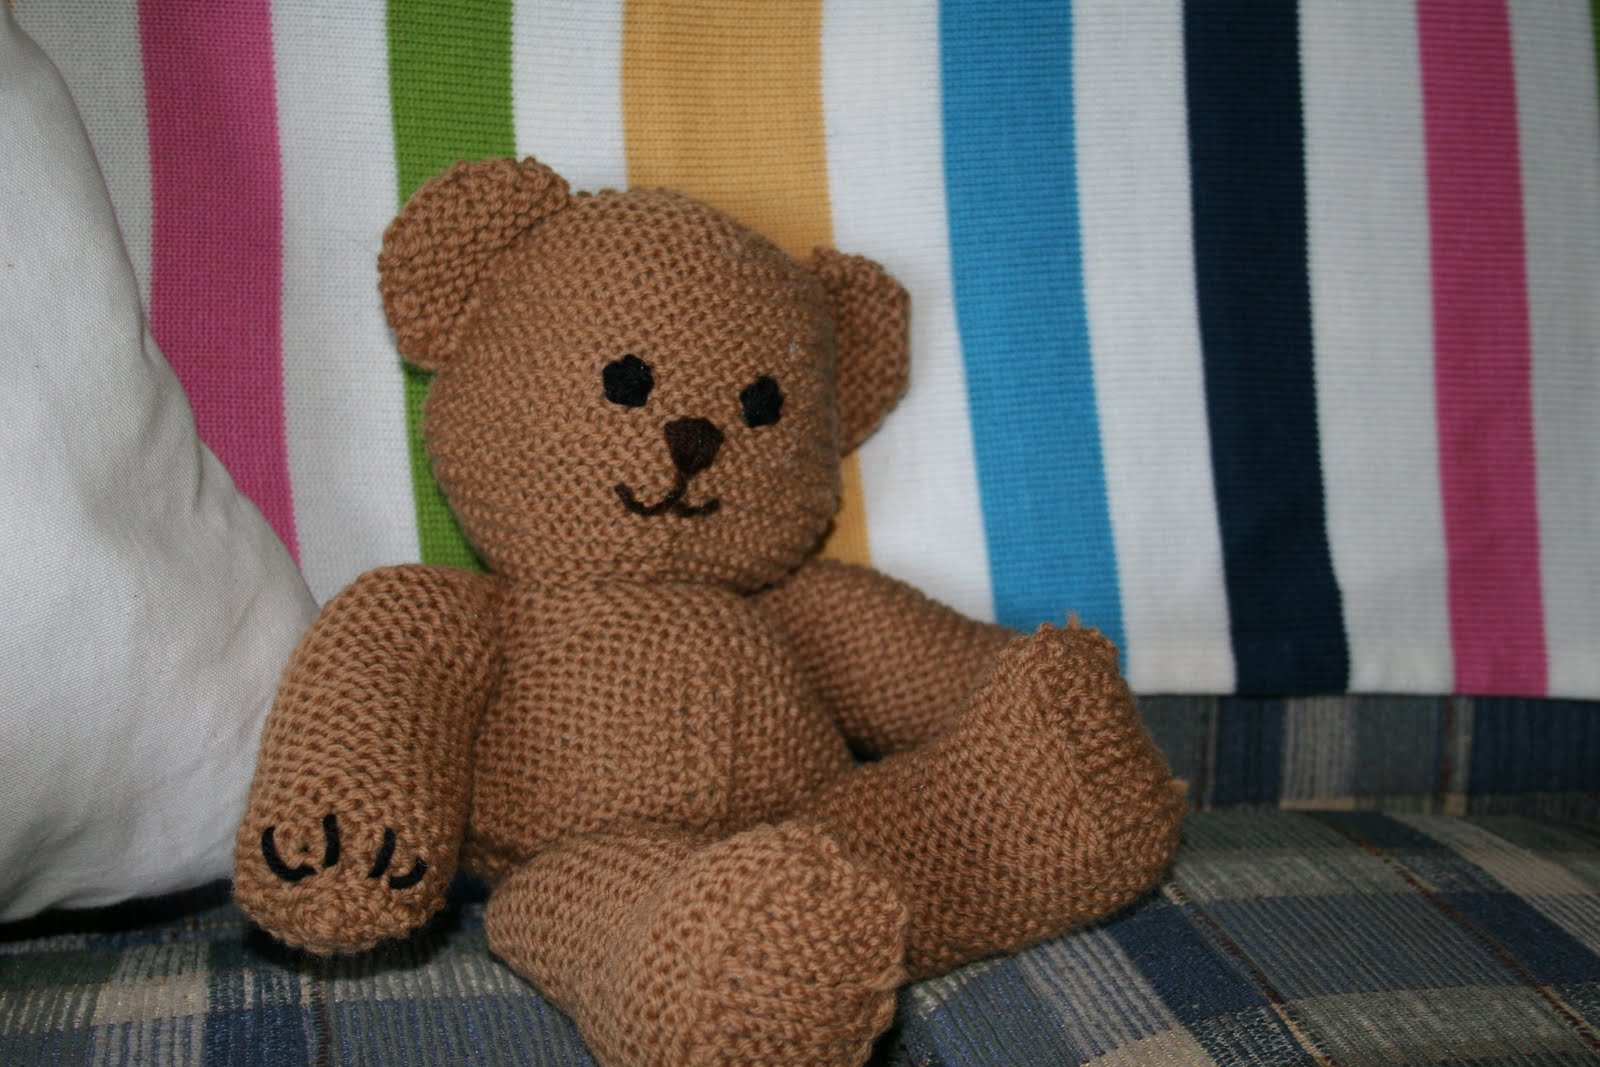 Knitting Pattern For All In One Teddy Bear : joyful strength: knit teddy bear